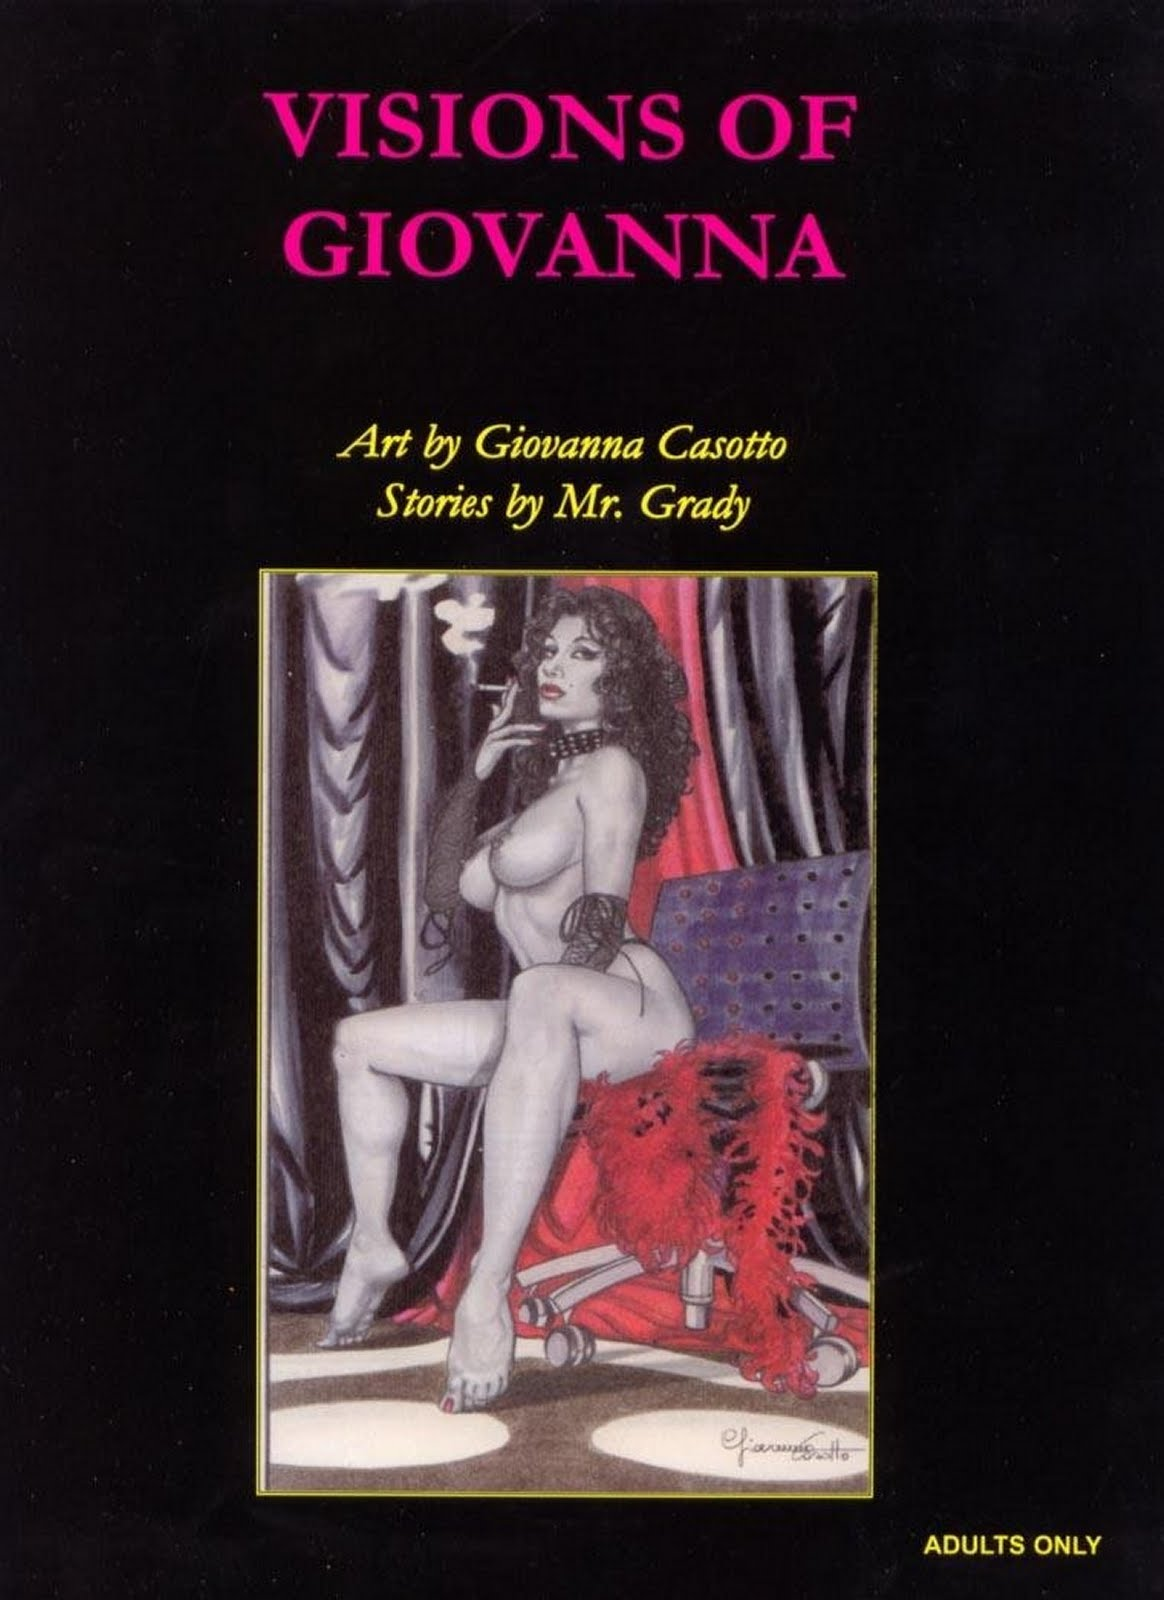 Labels: Adult Comix, giovanna